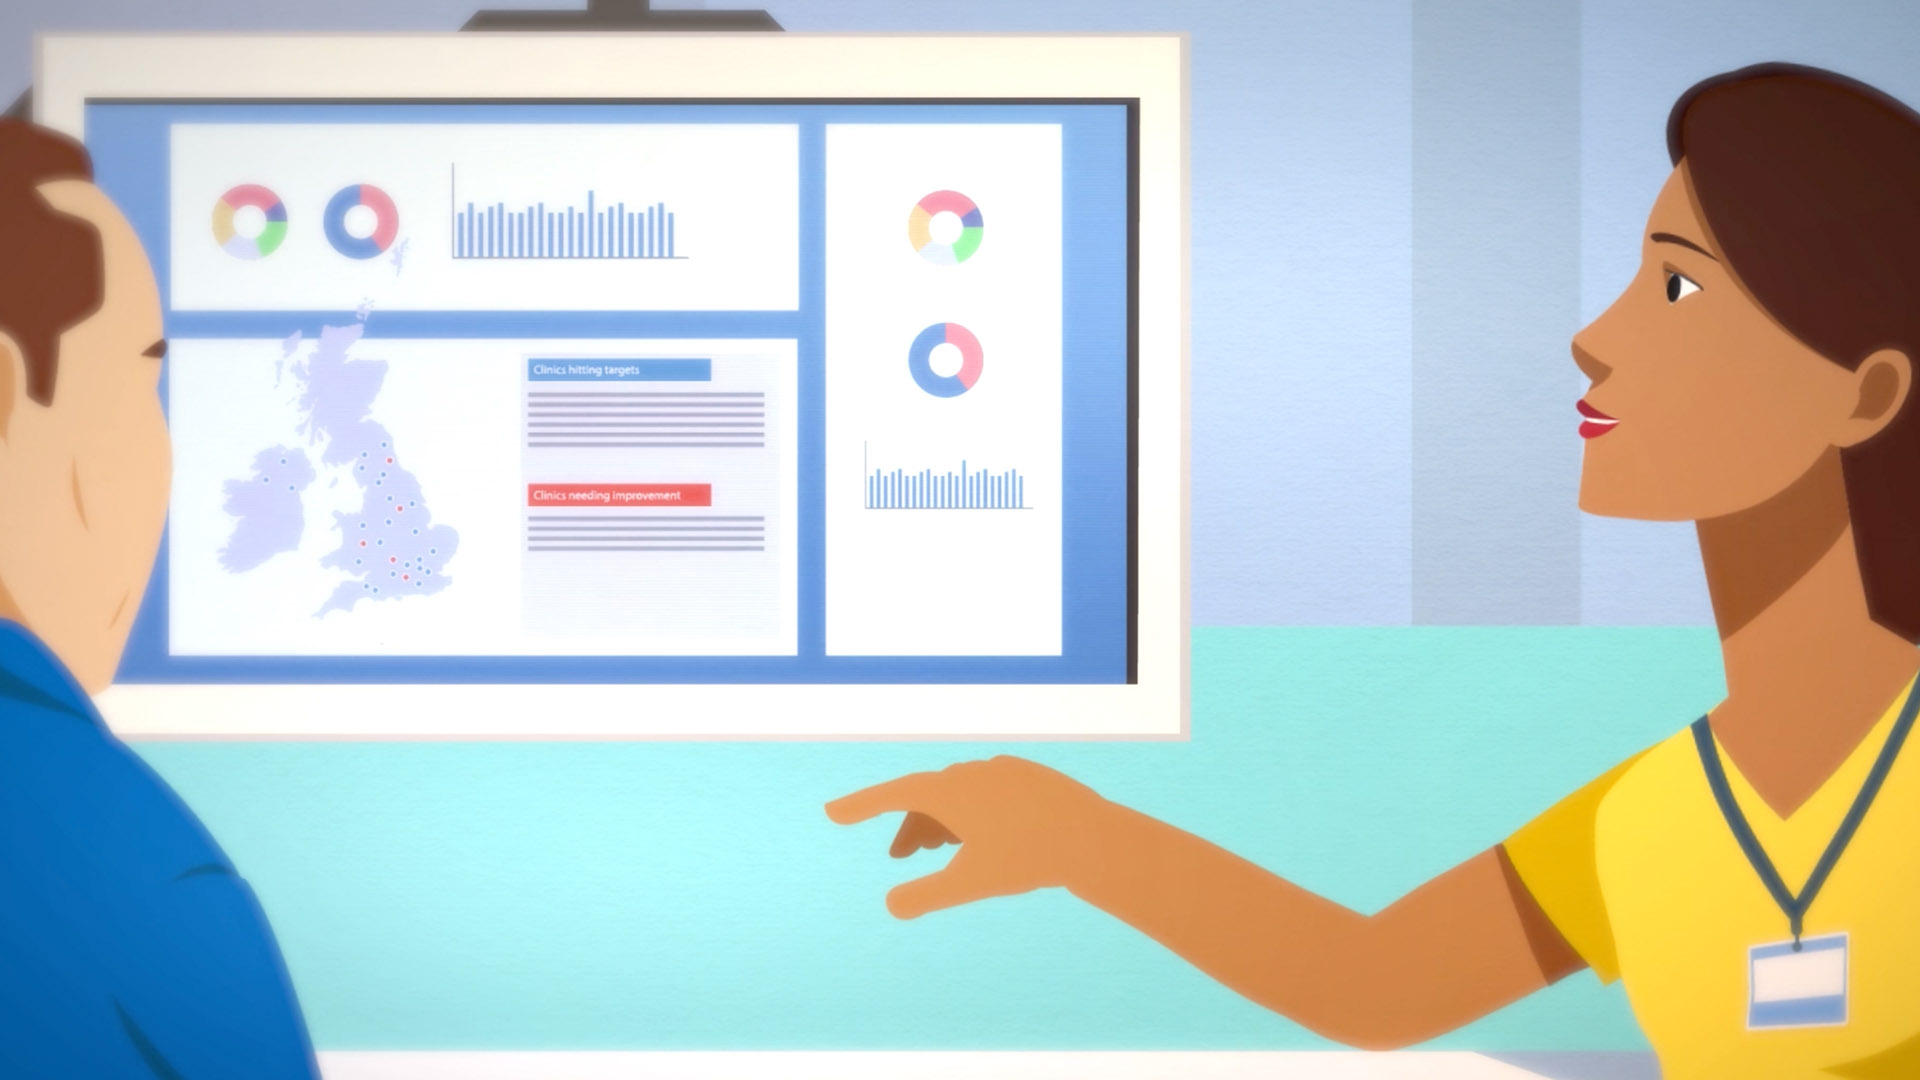 PRSB teams up with Understanding Patient Data to launch new animations